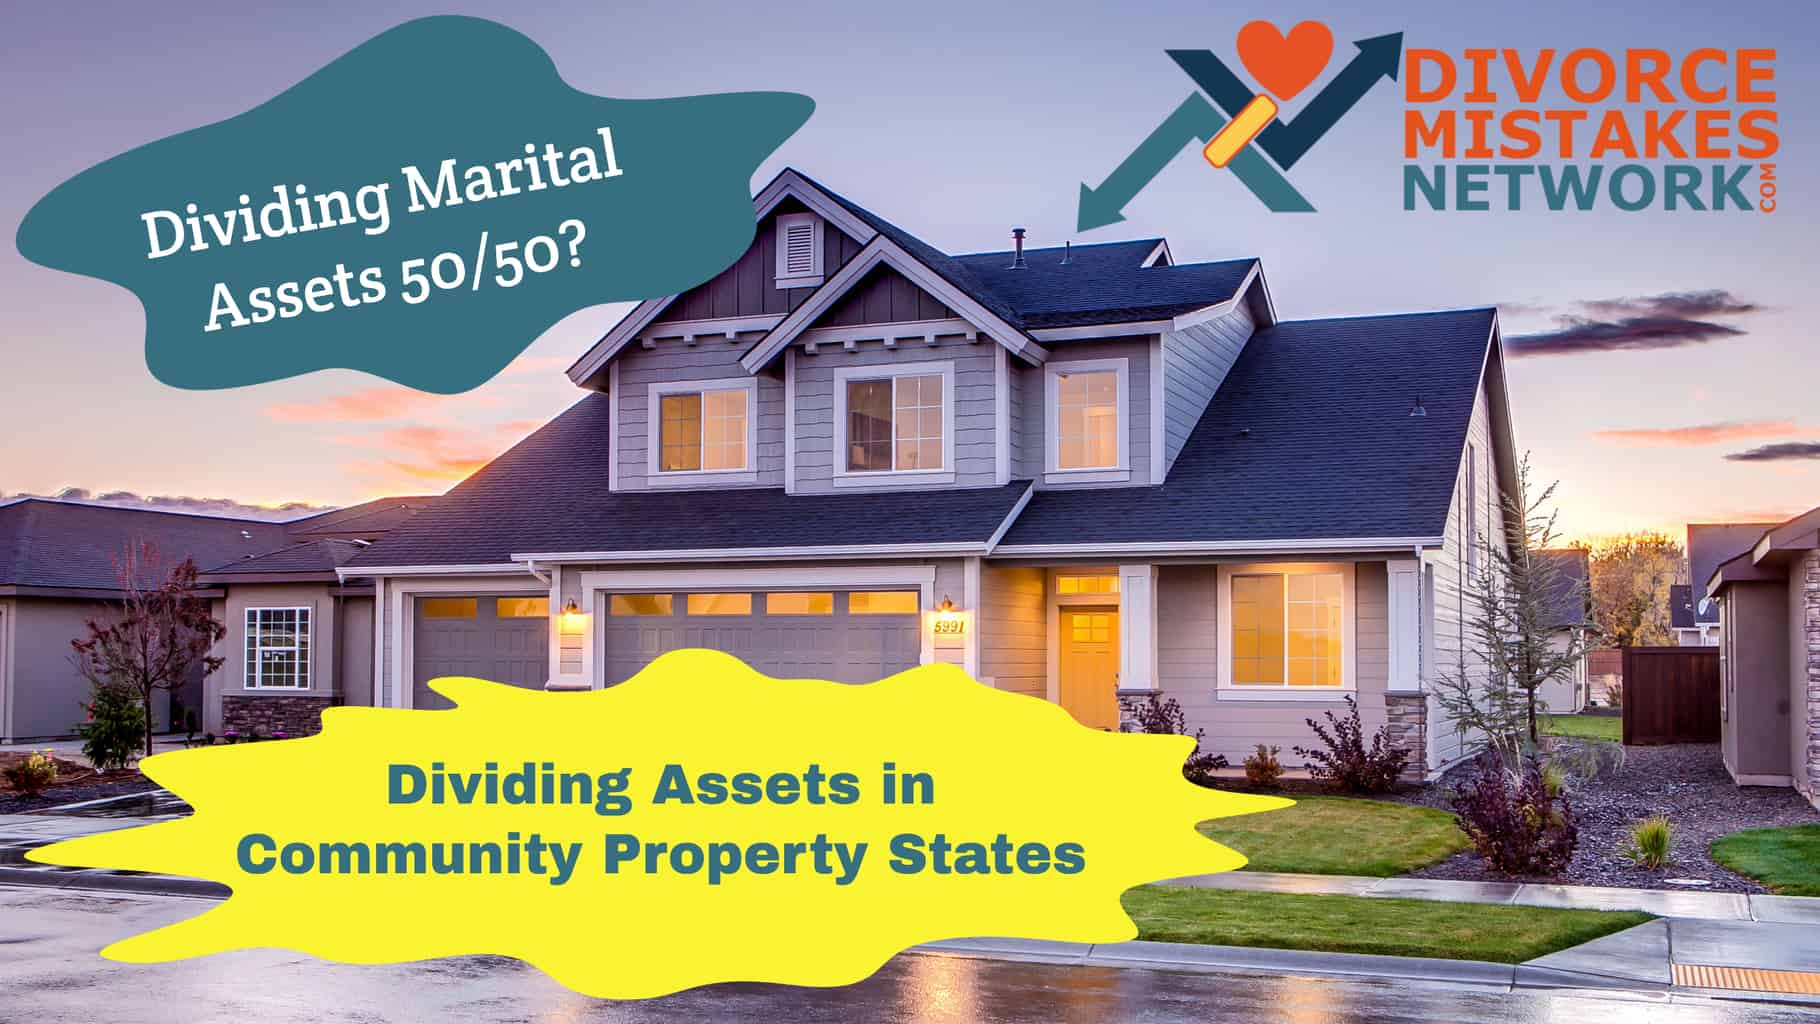 Financial Advice And Division Of Marital Assets In A